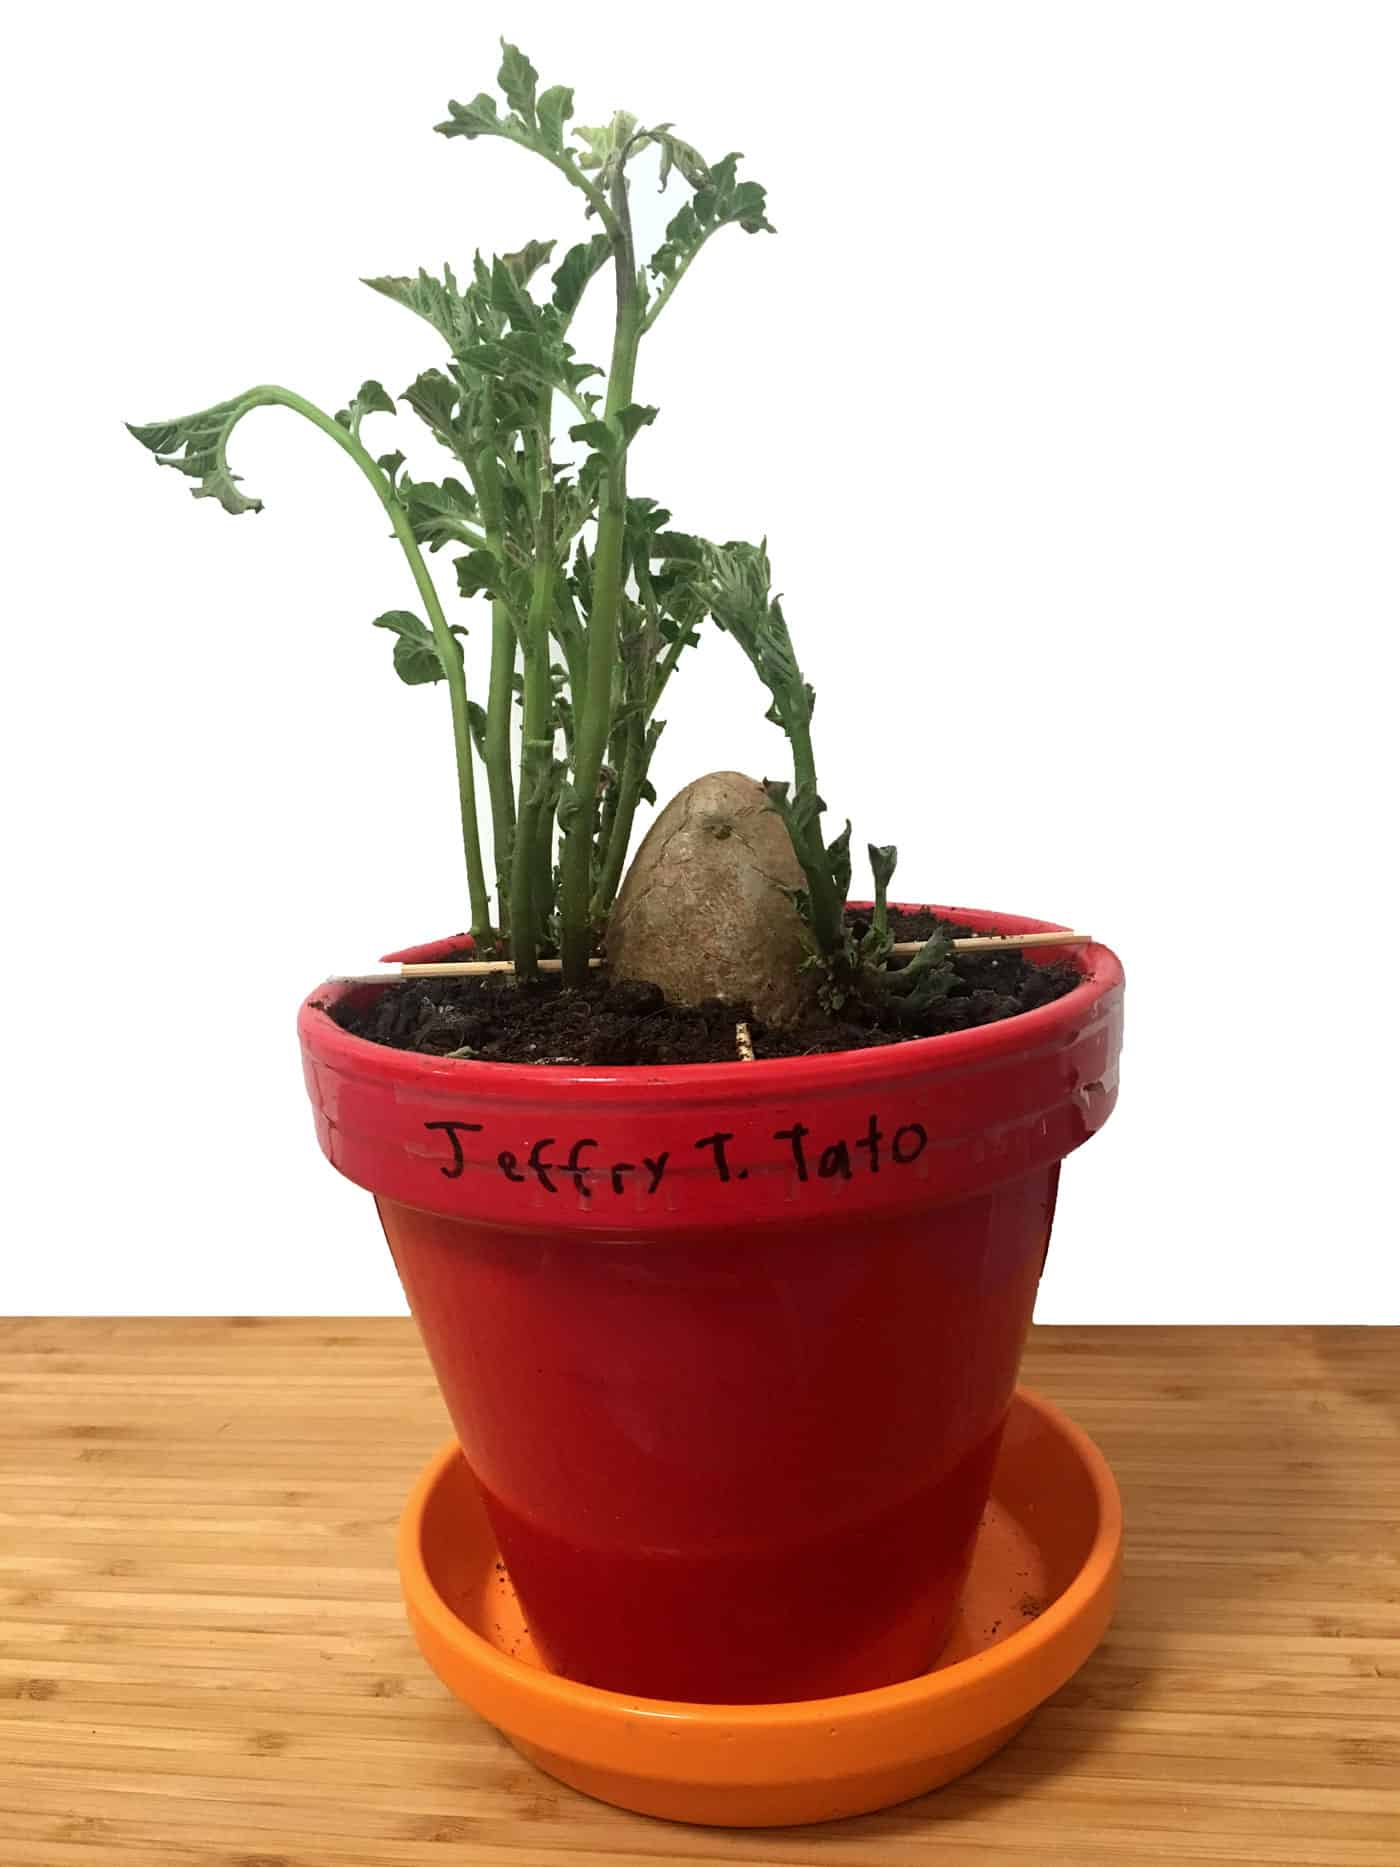 Jeffry the (po)Tato is a potato Mitch is trying to grow into a plant!